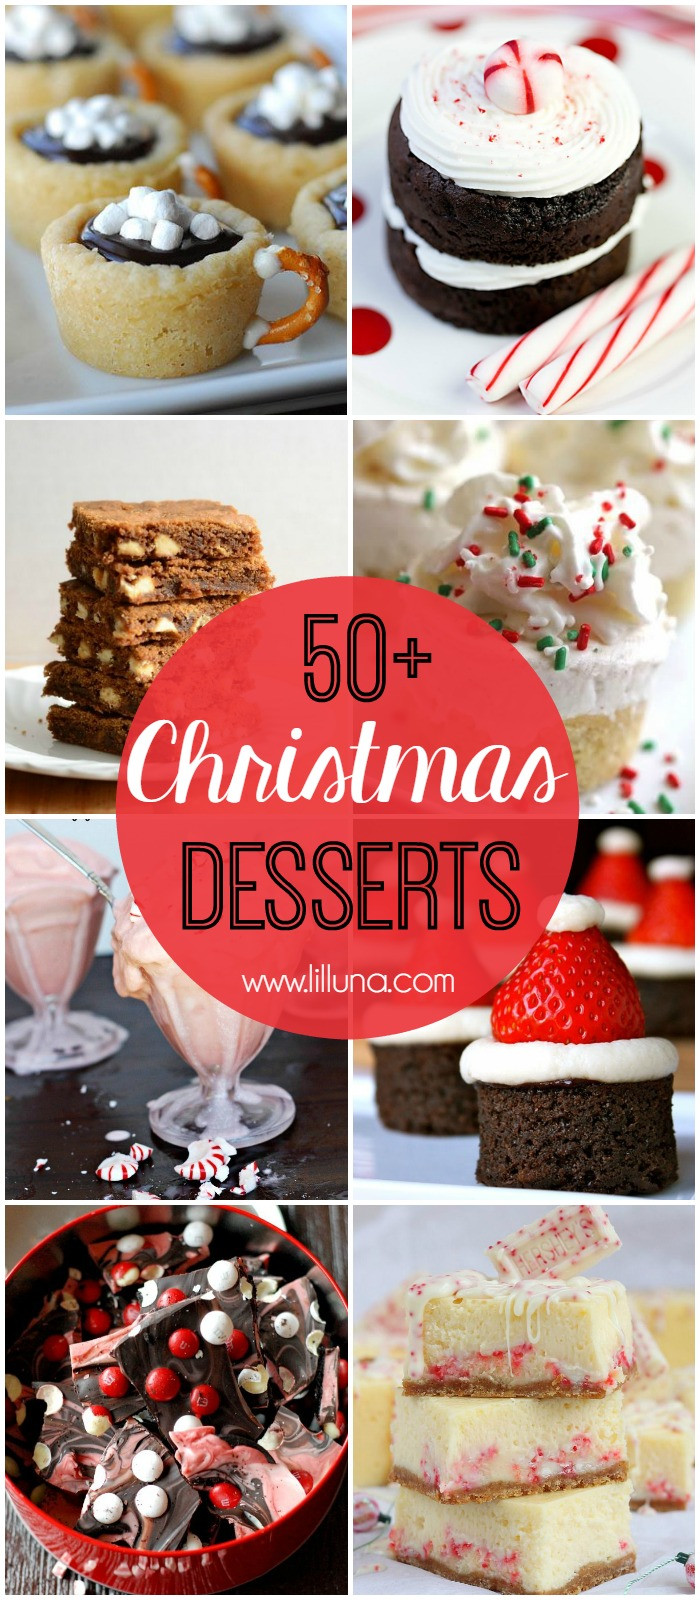 Christmas Desserts Party  Christmas Desserts